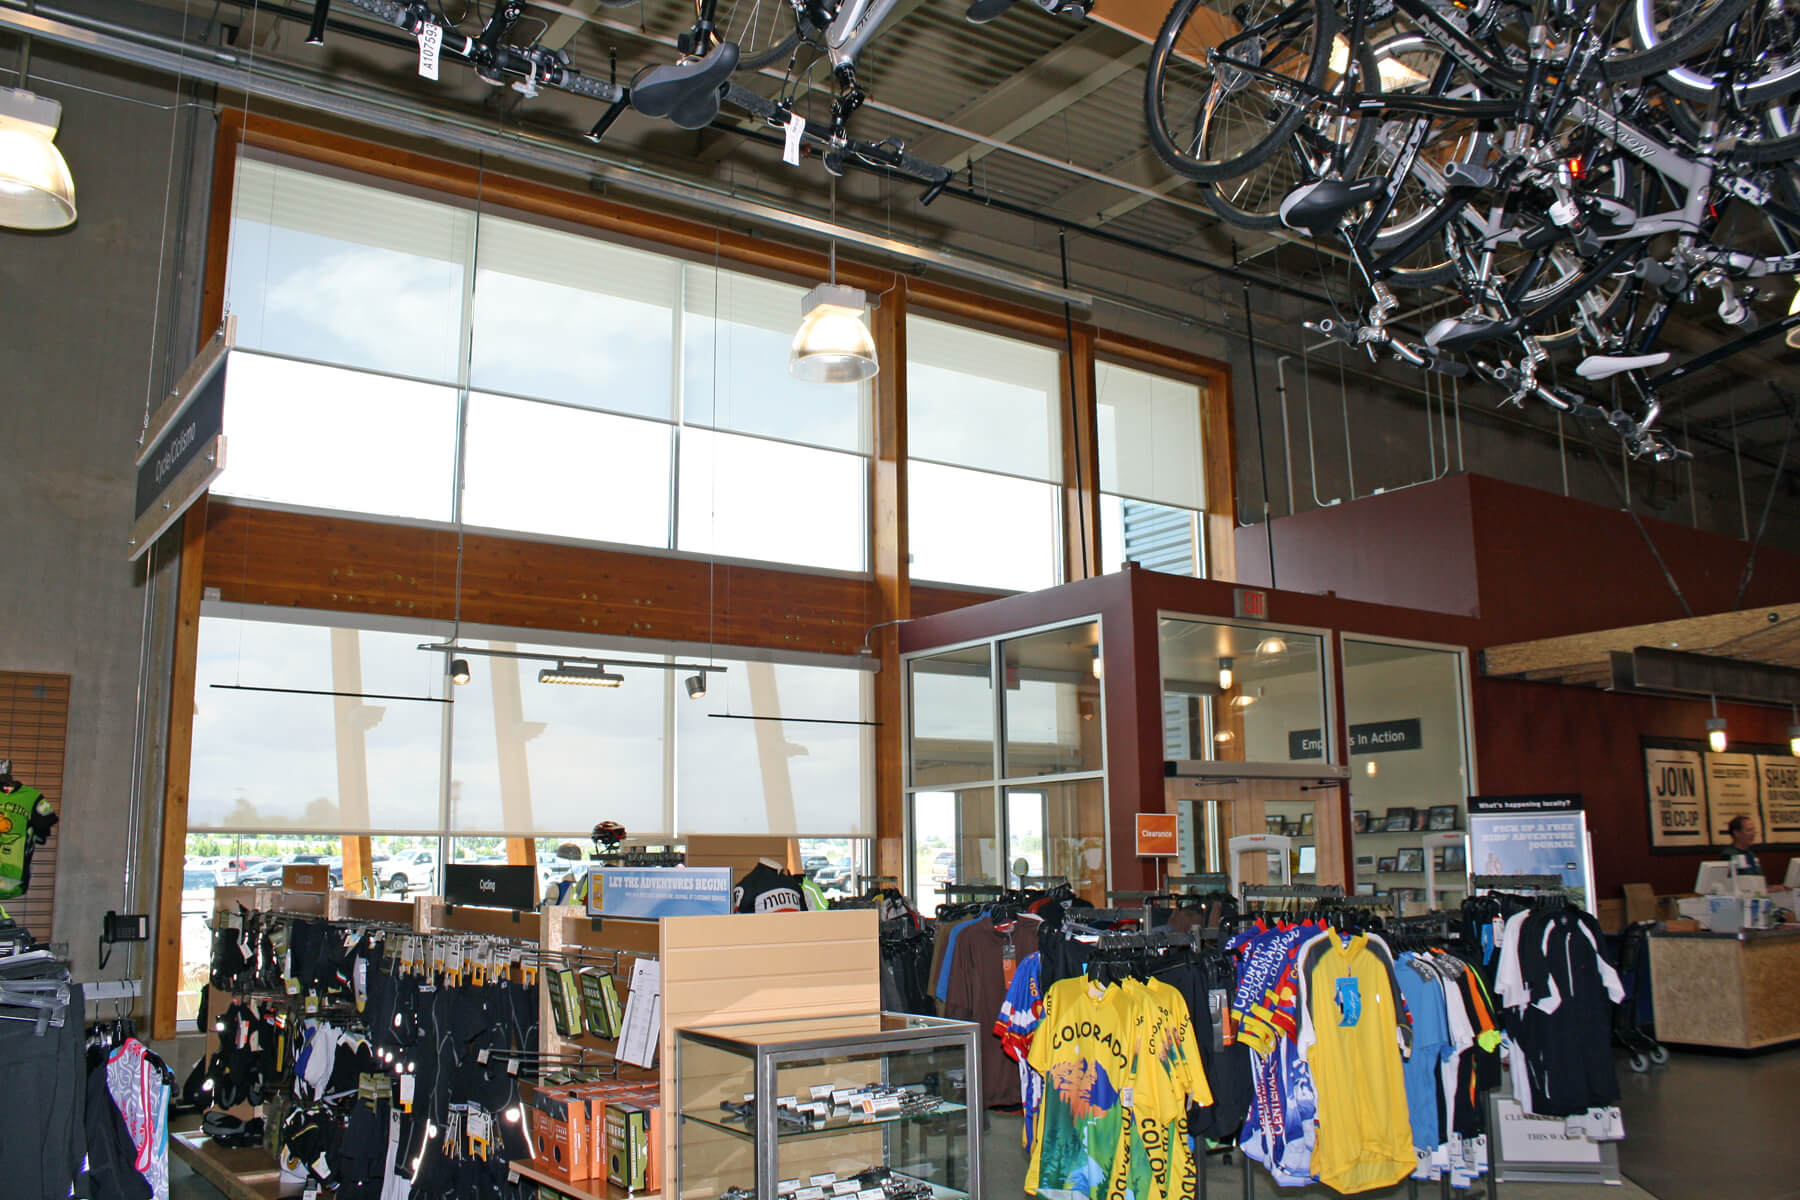 Shades and screens are excellent commercial window treatments options for retail locations because they can be printed with logos and branding.